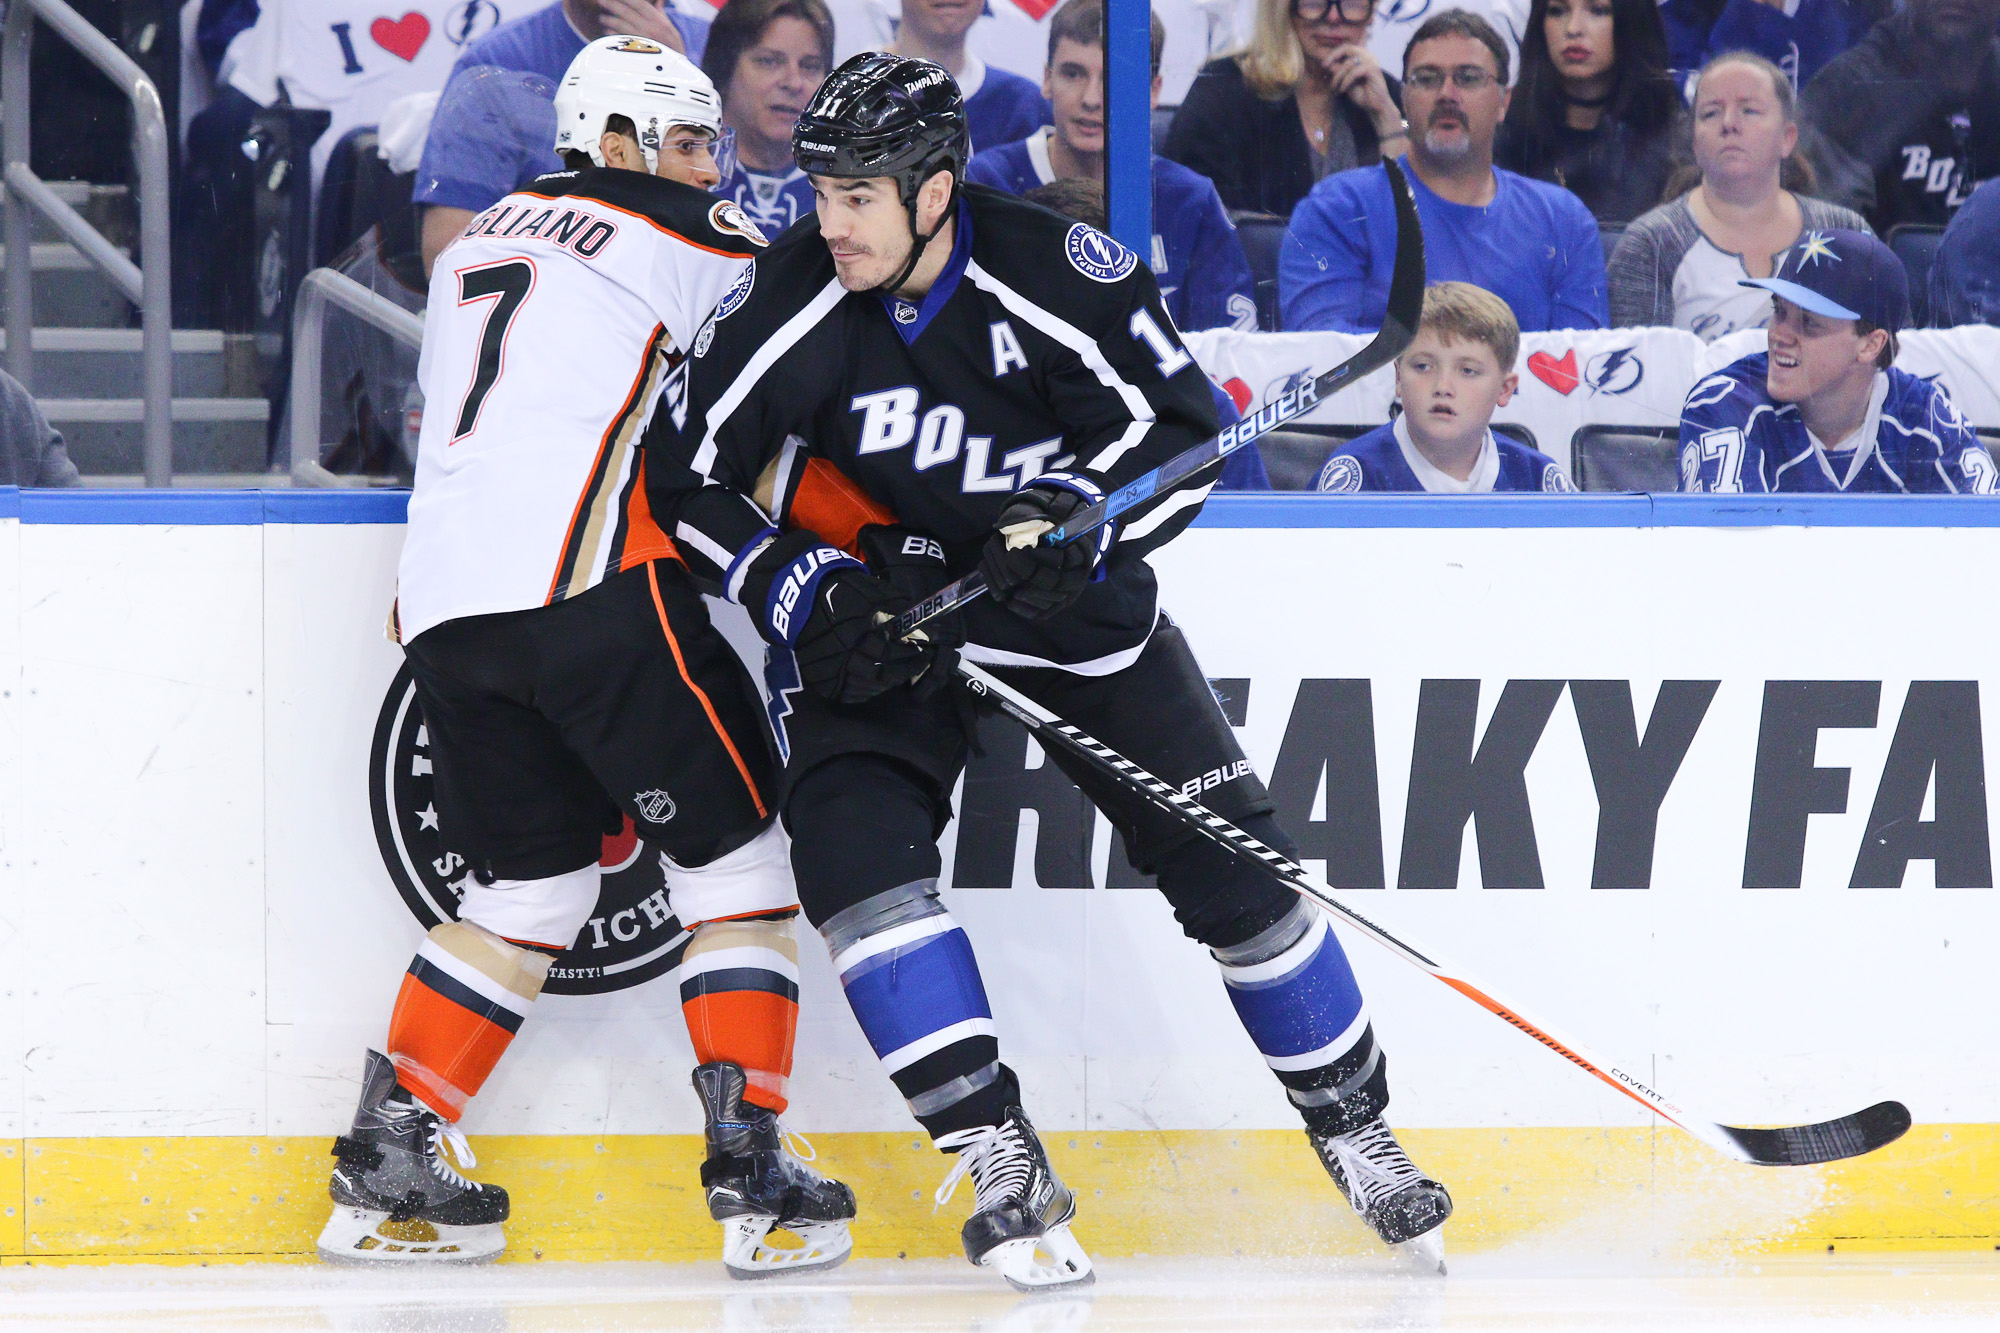 Boyle battles along the boards with Cogliano/ANDREW J. KRAMER